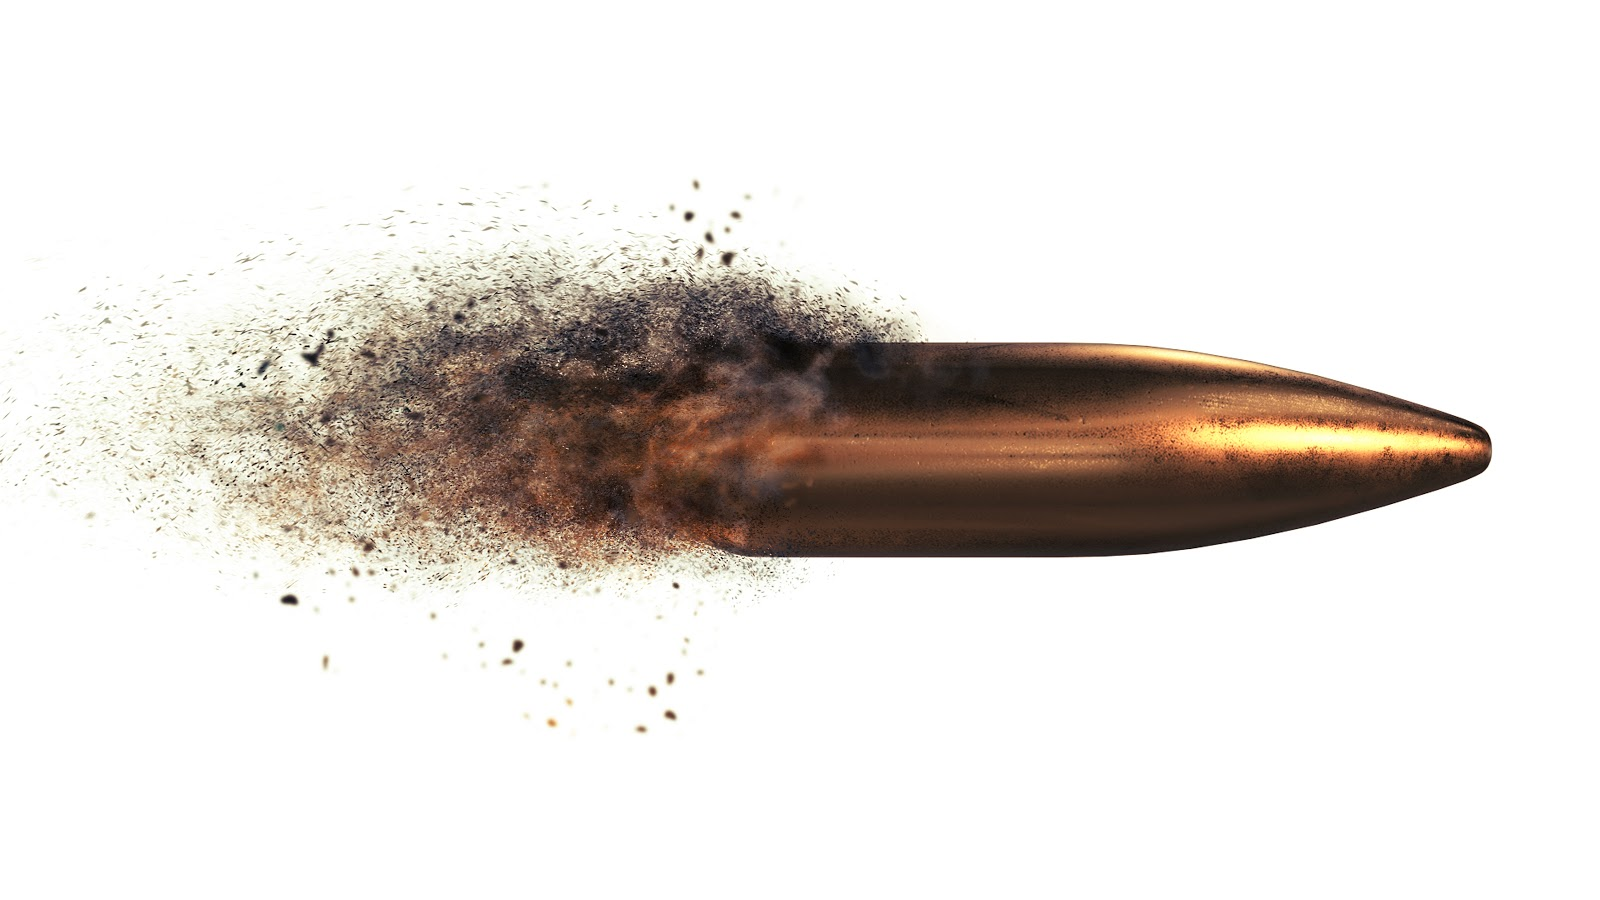 bullet projectile after being fired recently